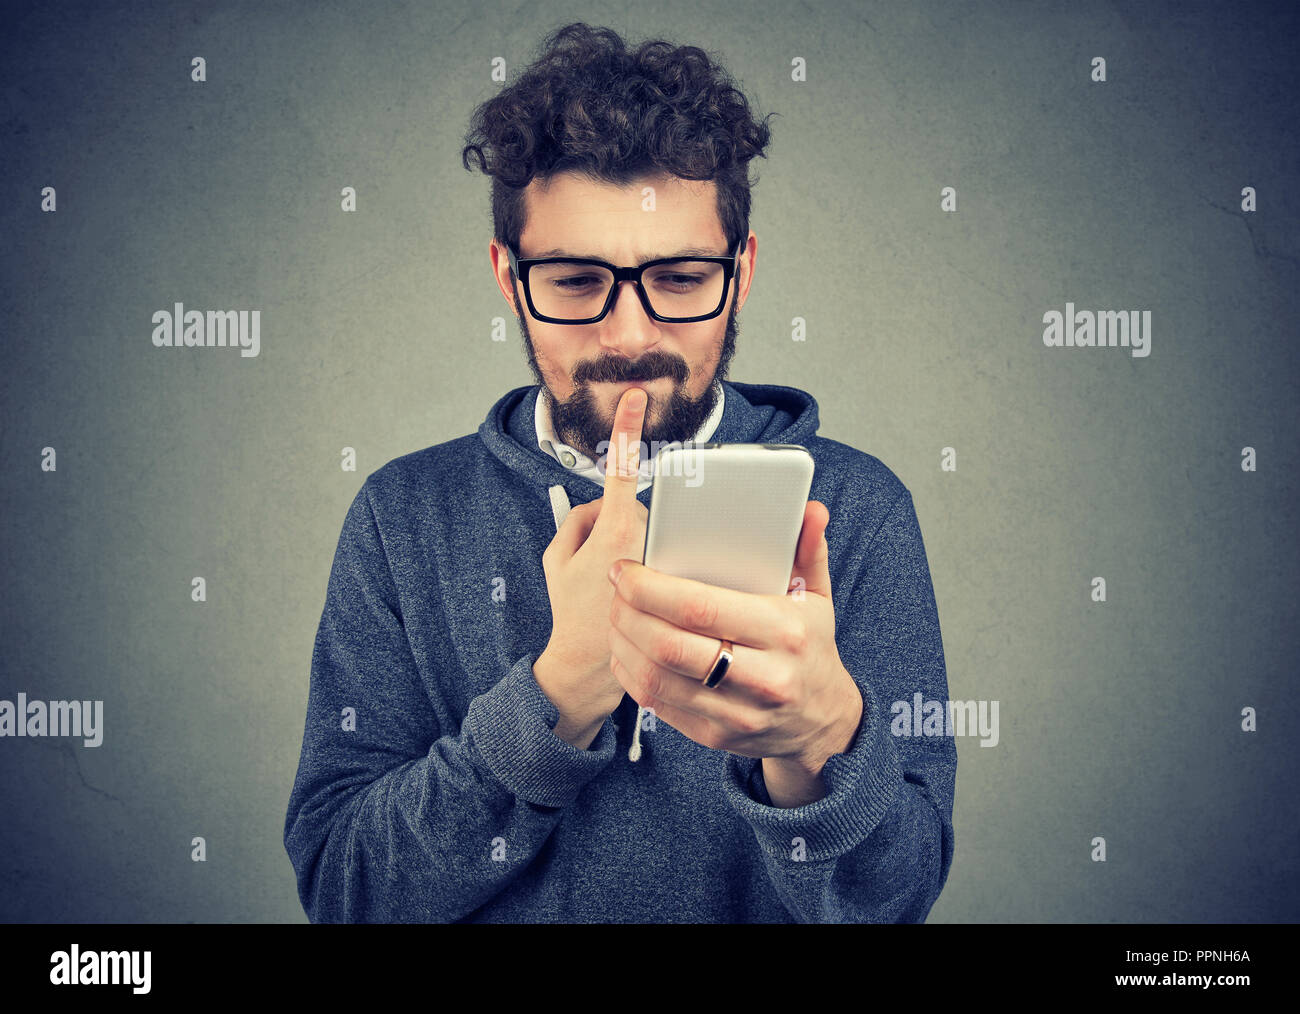 puzzled man thinking what to reply to received text message on cell phone isolated  on gray wall background. Face expression reaction body language - Stock Image